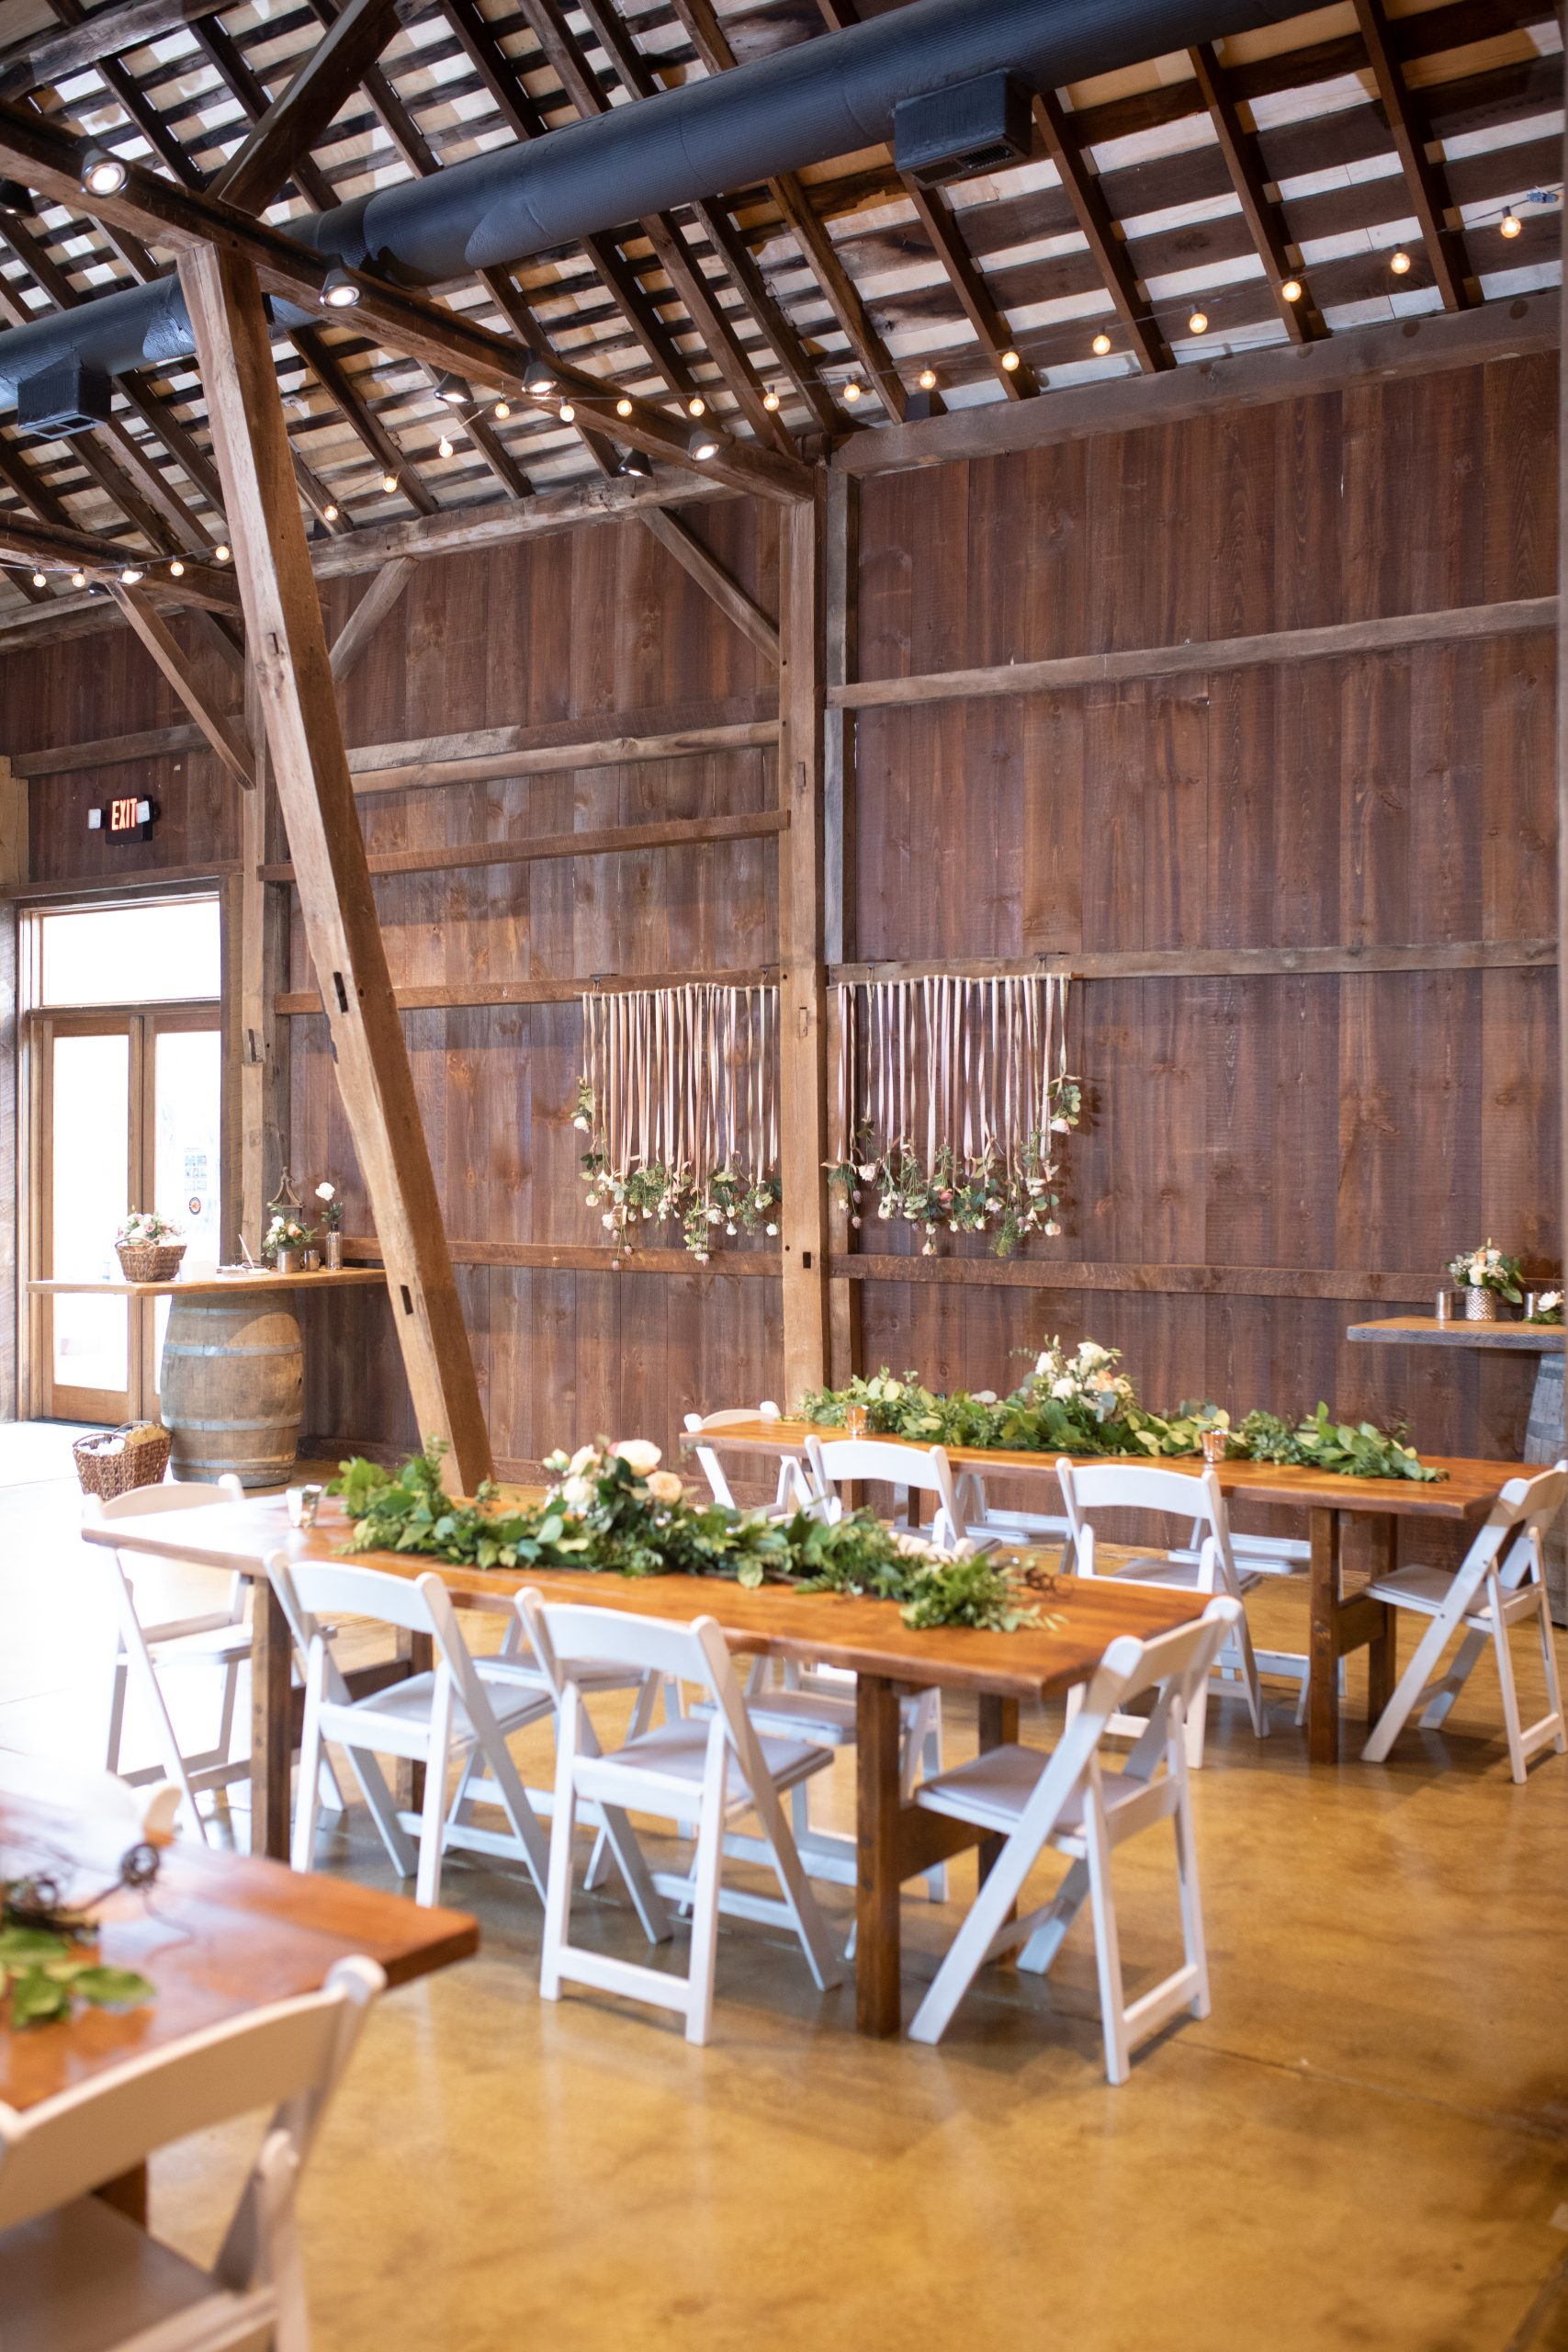 Kalero Vineyard wedding barn decor photographs, Stephanie Leigh Photography & Design